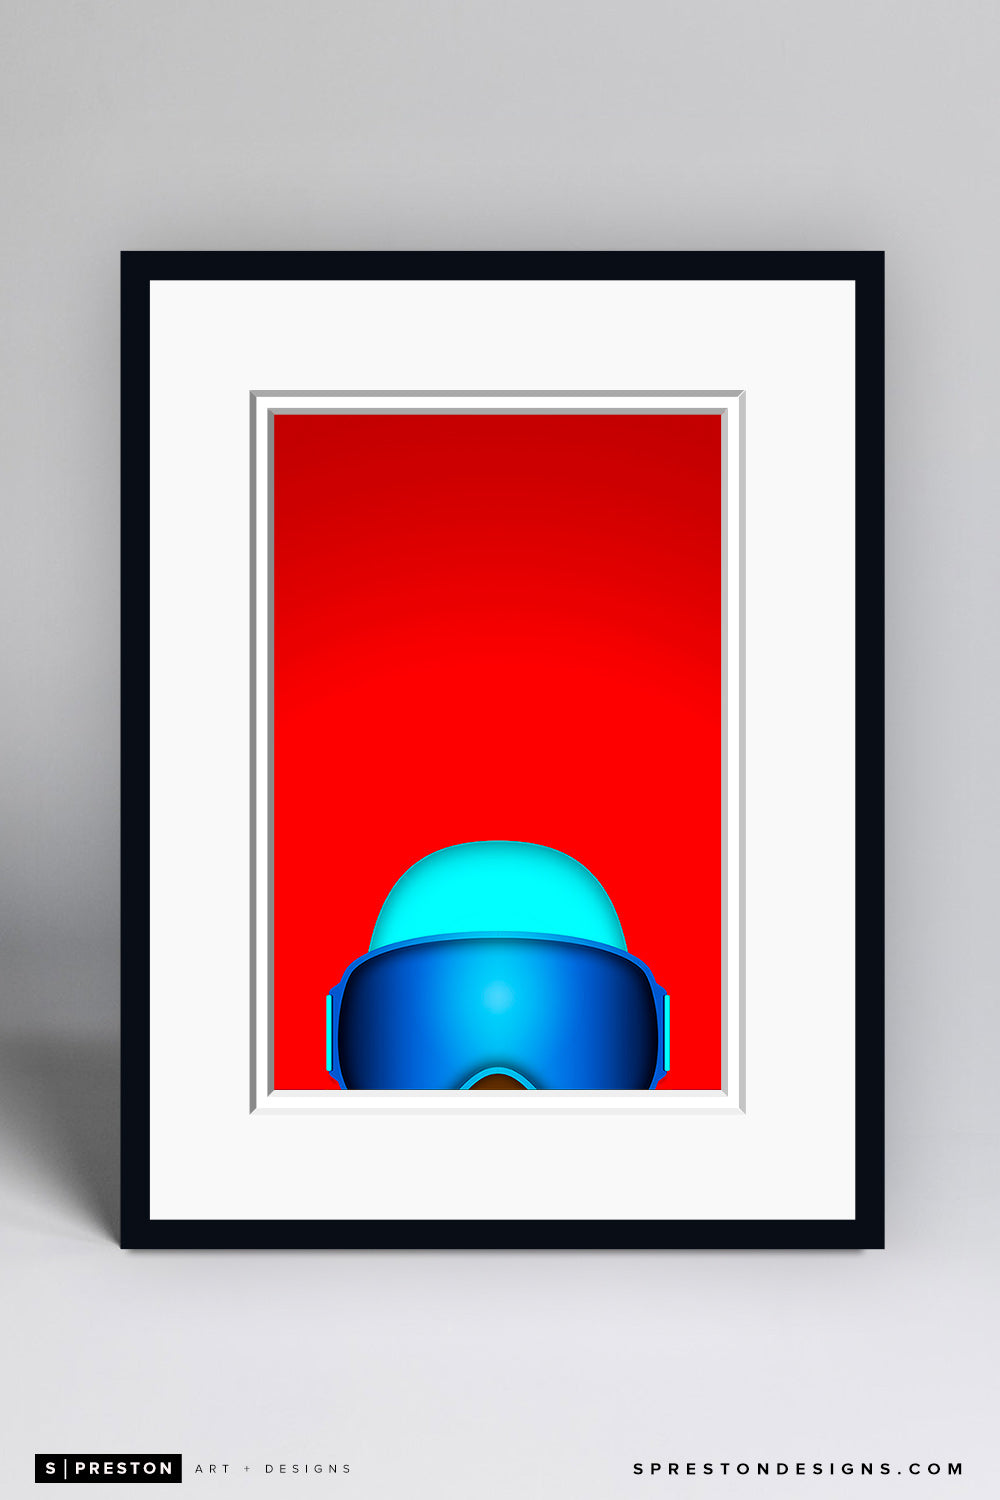 Minimalist The Freeze - Altanta Braves Art Print - Atlanta Braves - S. Preston Art + Designs